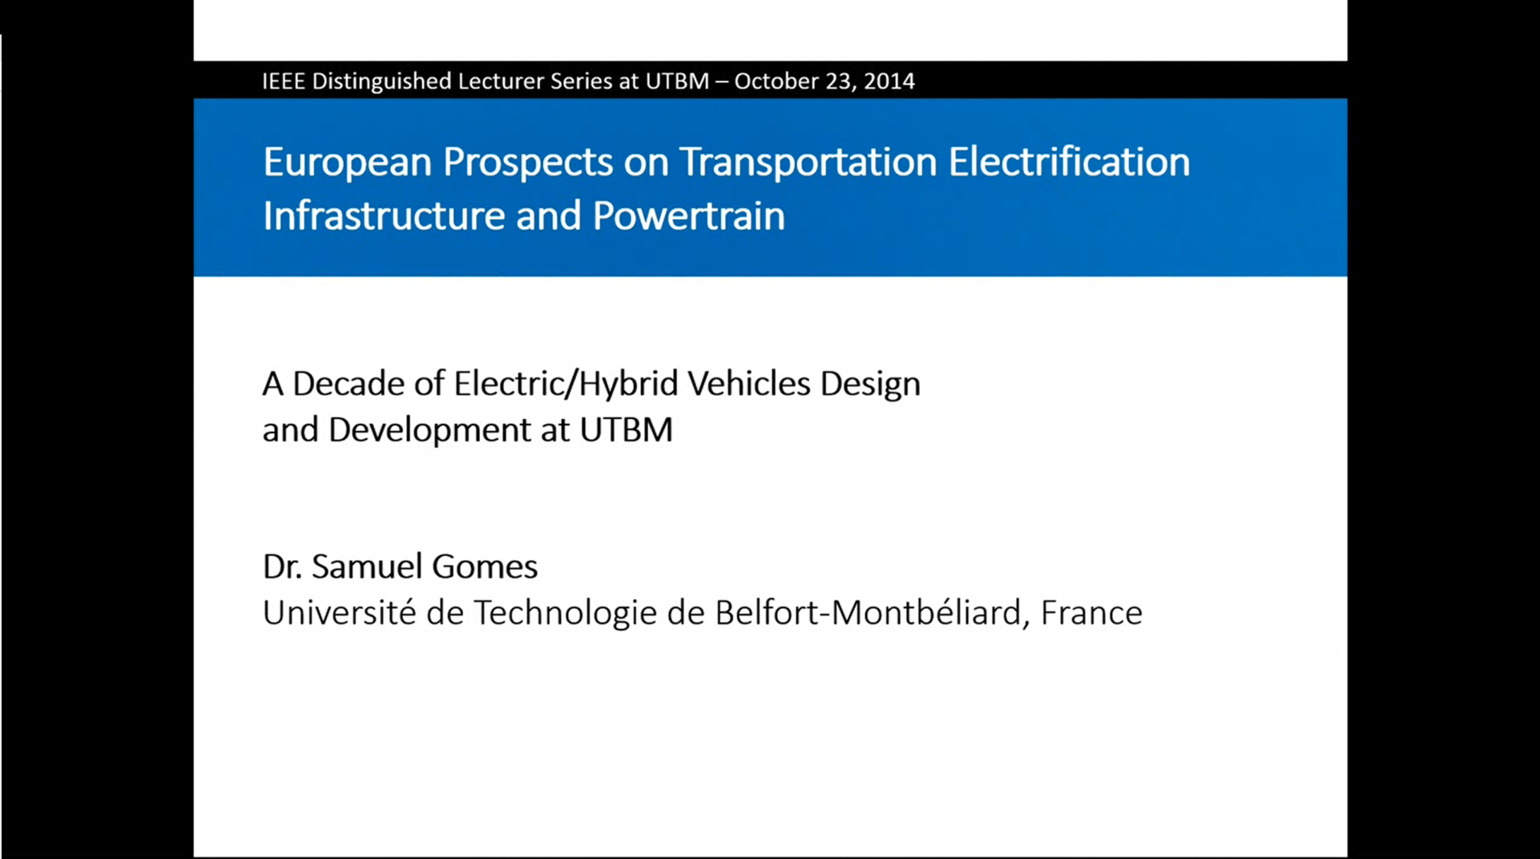 A Decade of Electric/Hybrid Vehicles Design and Development at UTBM